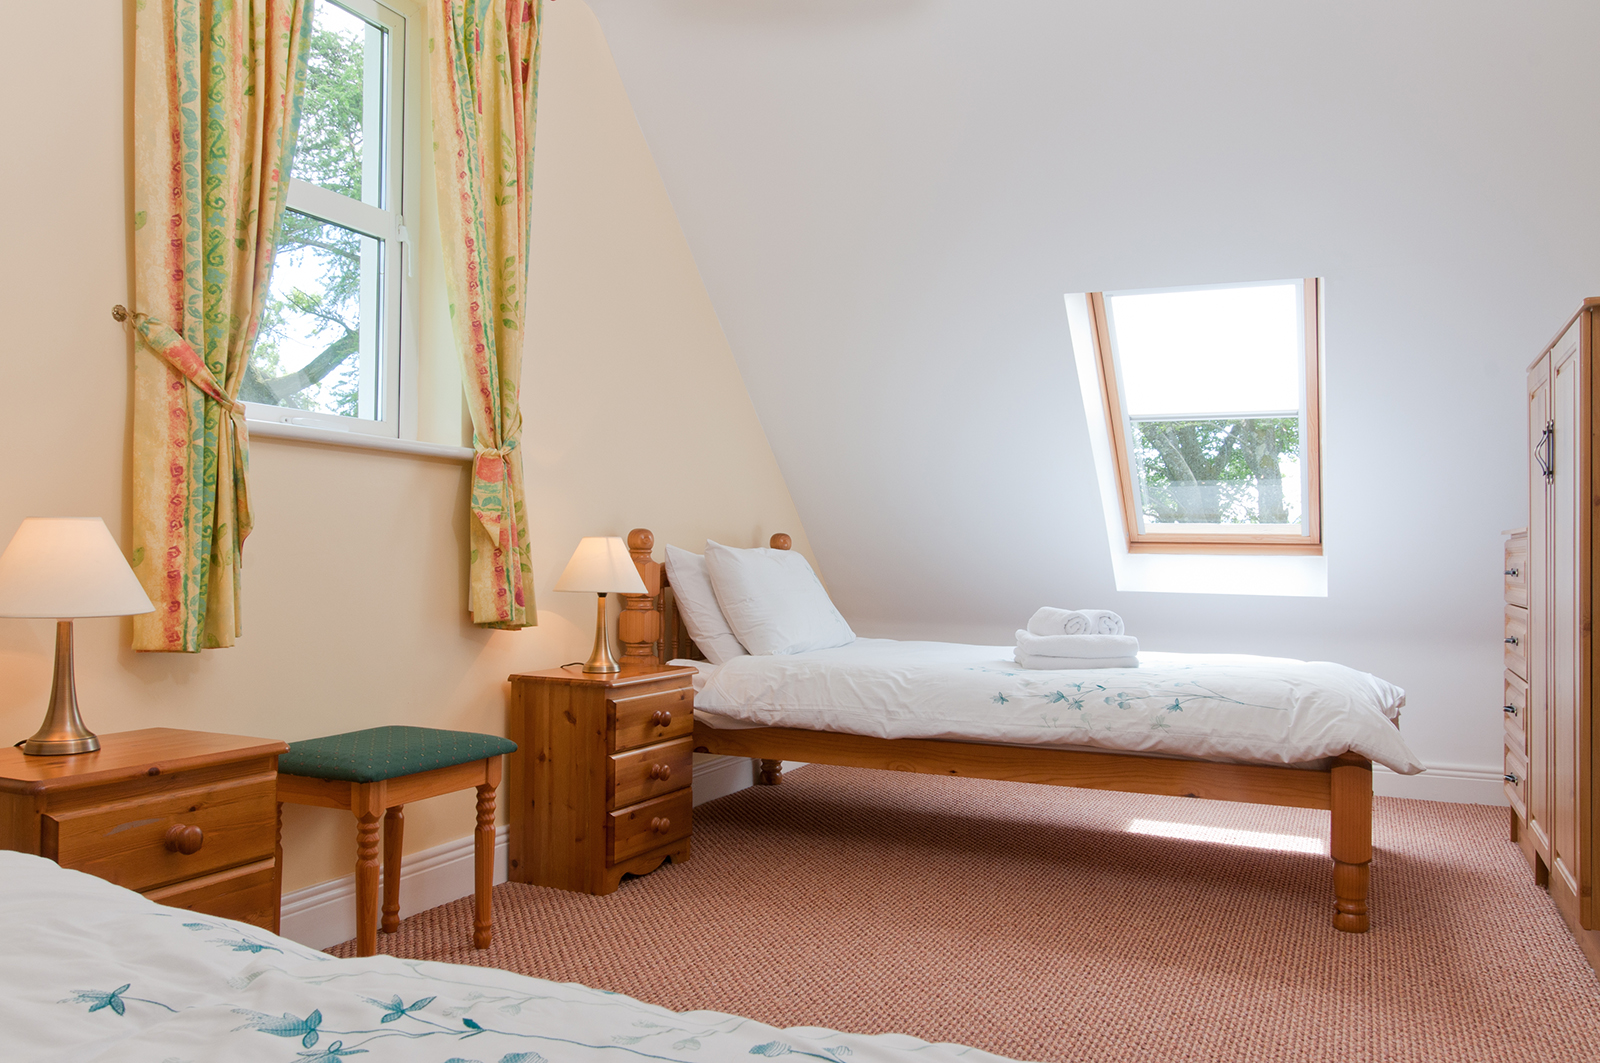 Bedroom of self-catering holiday rental